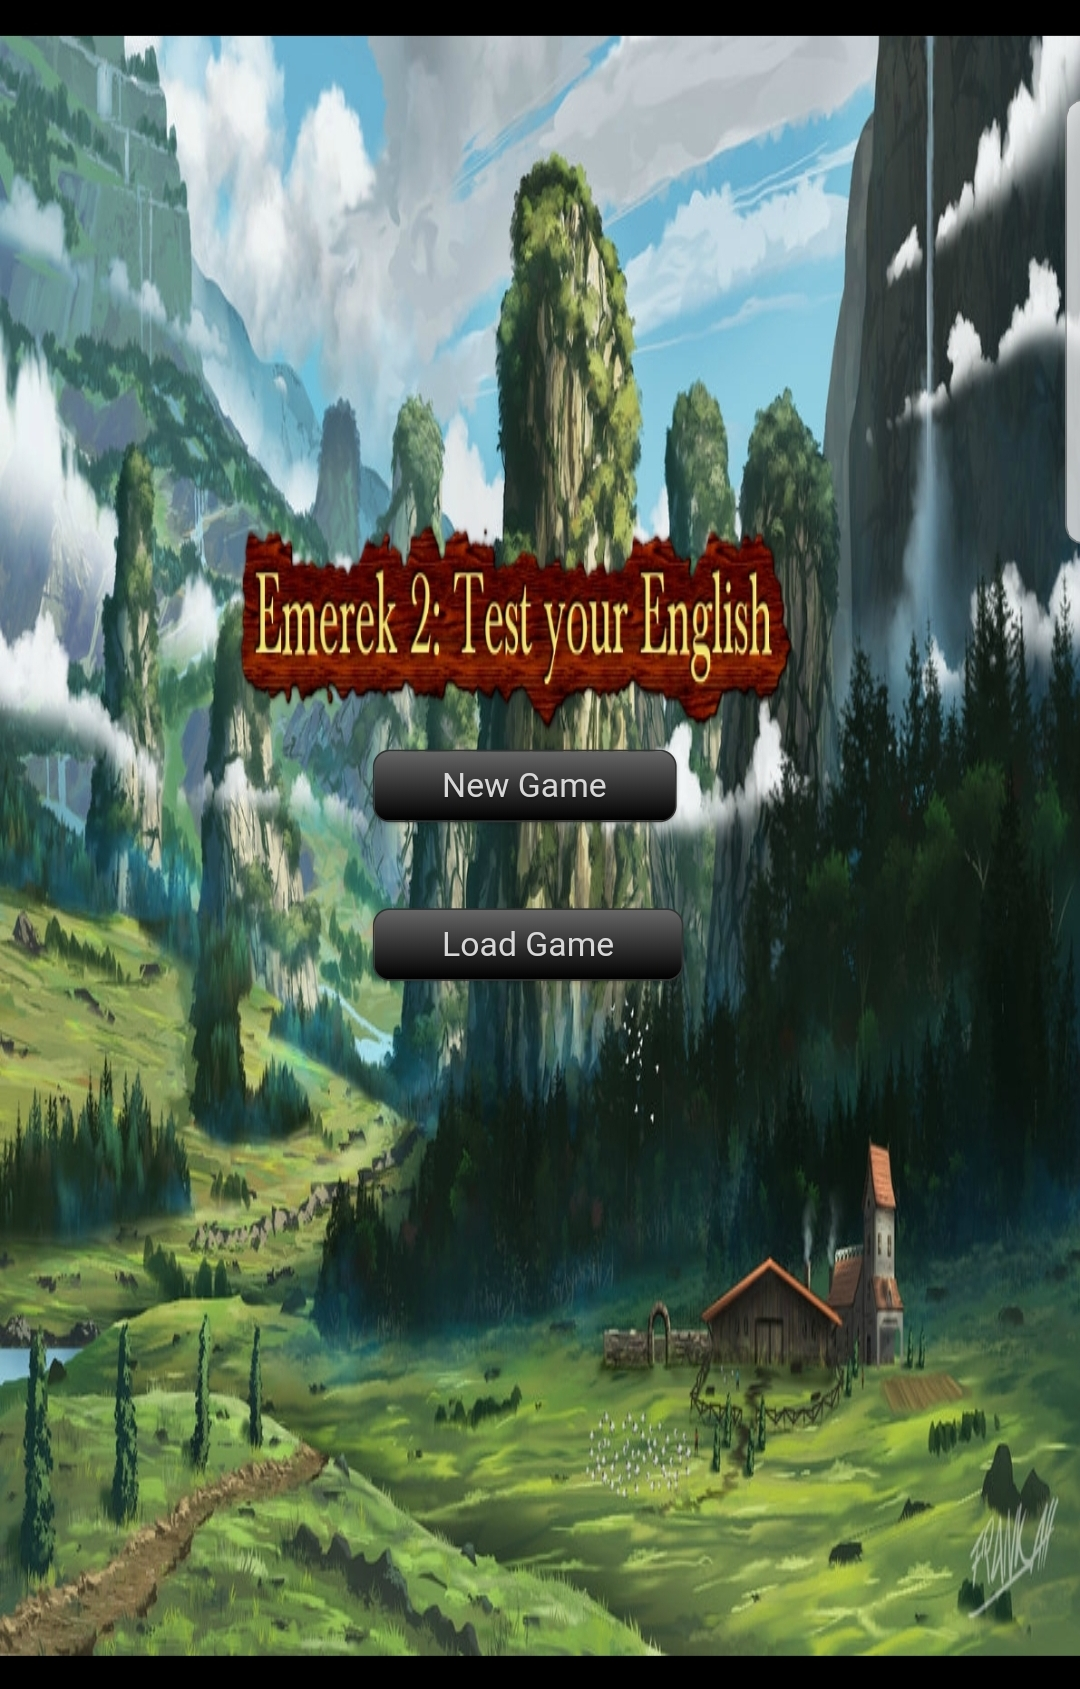 Emerek 2 : Test your English (game) - Release Announcements